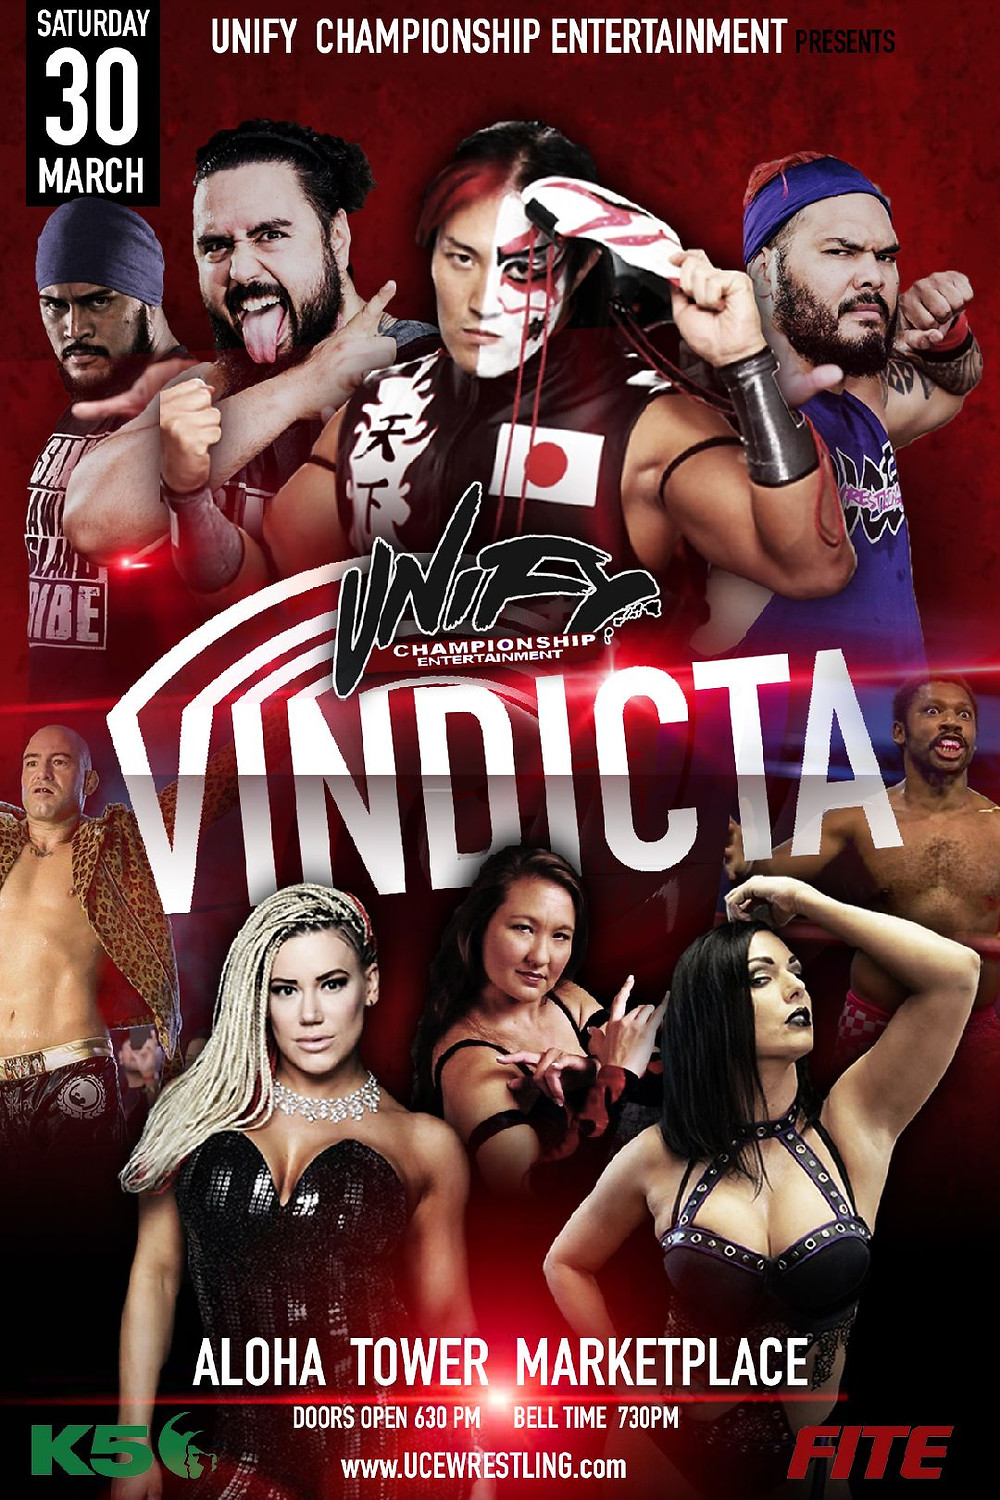 Unify Championship Entertainment Presents Vindicta